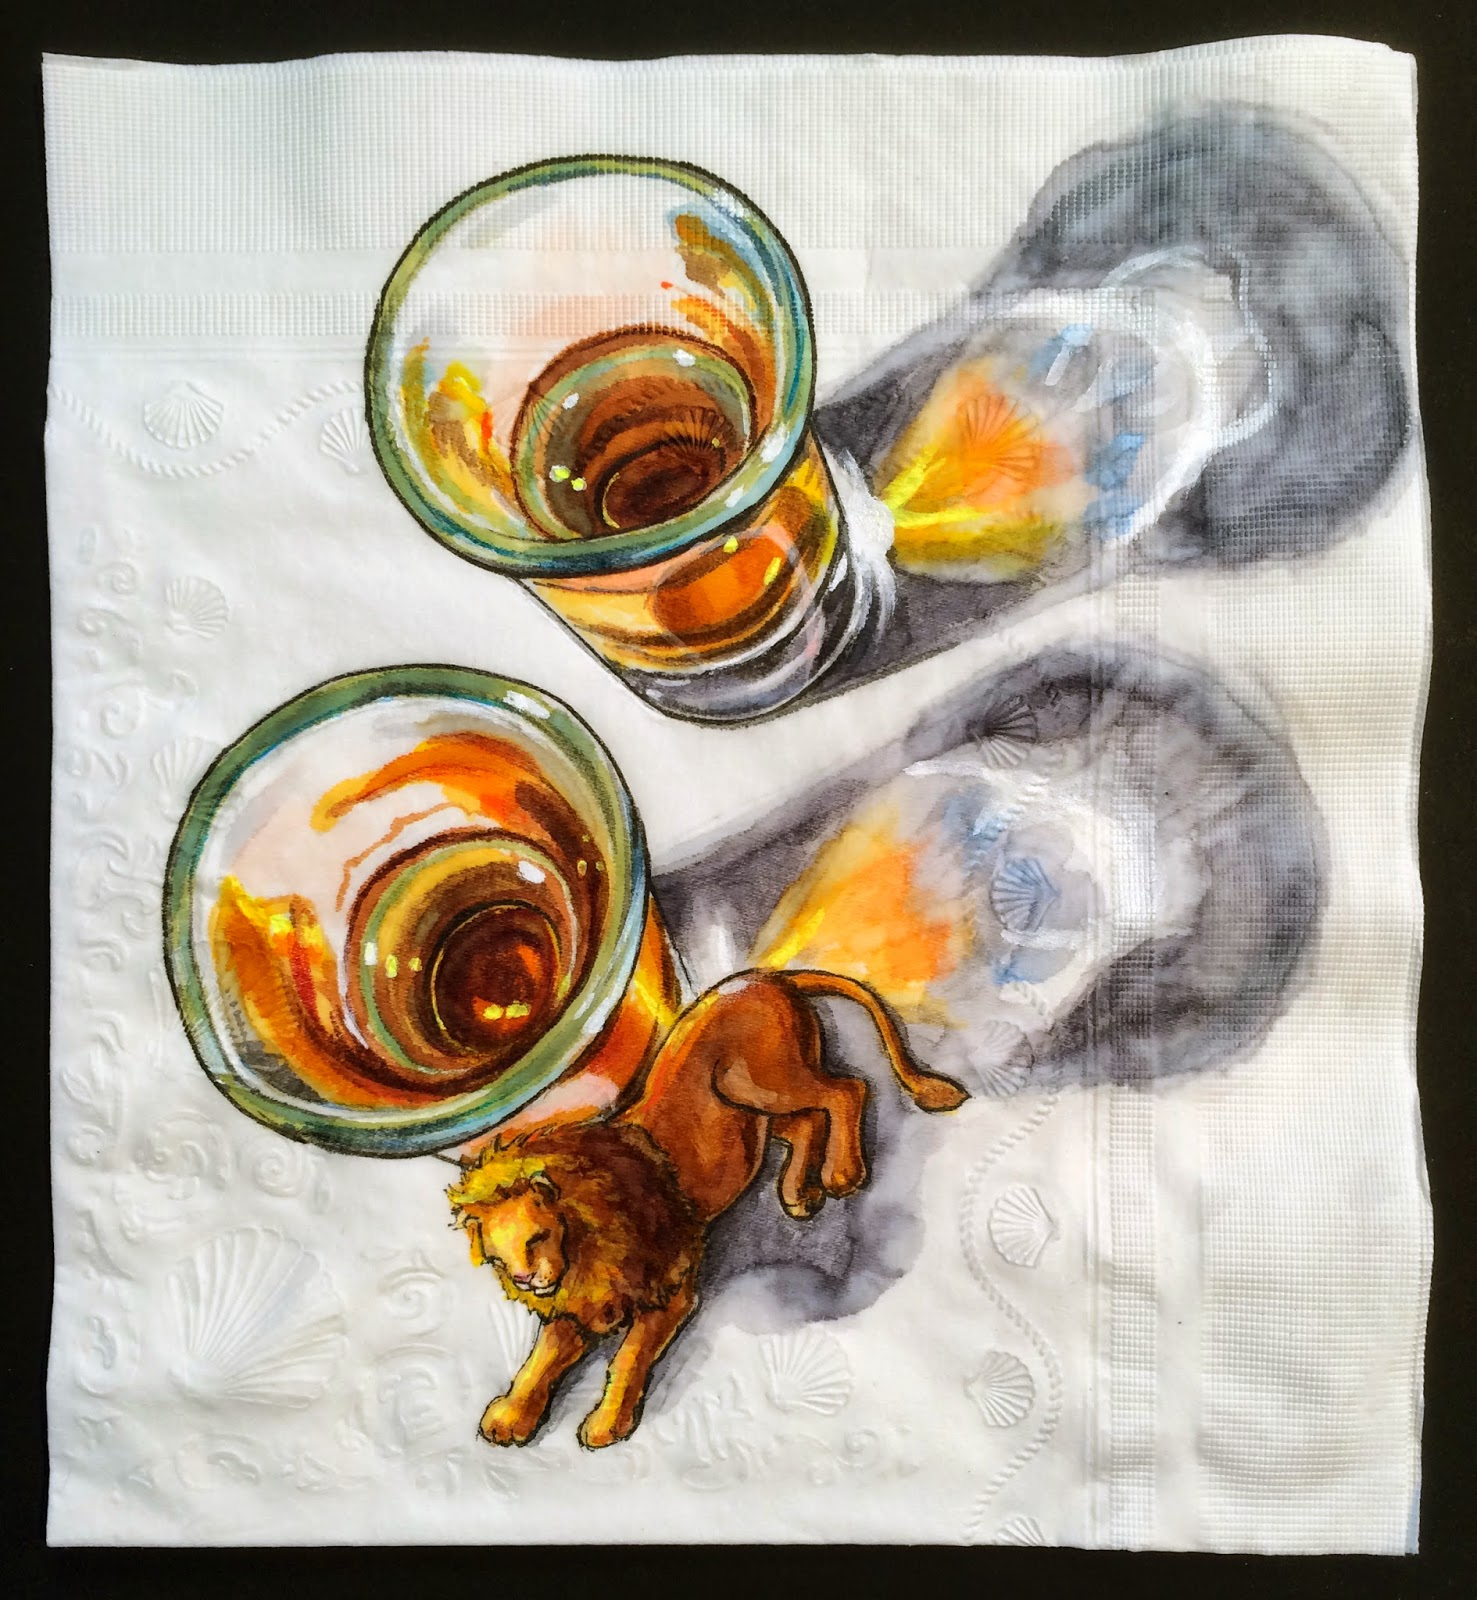 http://ninaslevy.blogspot.com/2014/03/cocktail-napkin-with-lion-for-scale.html